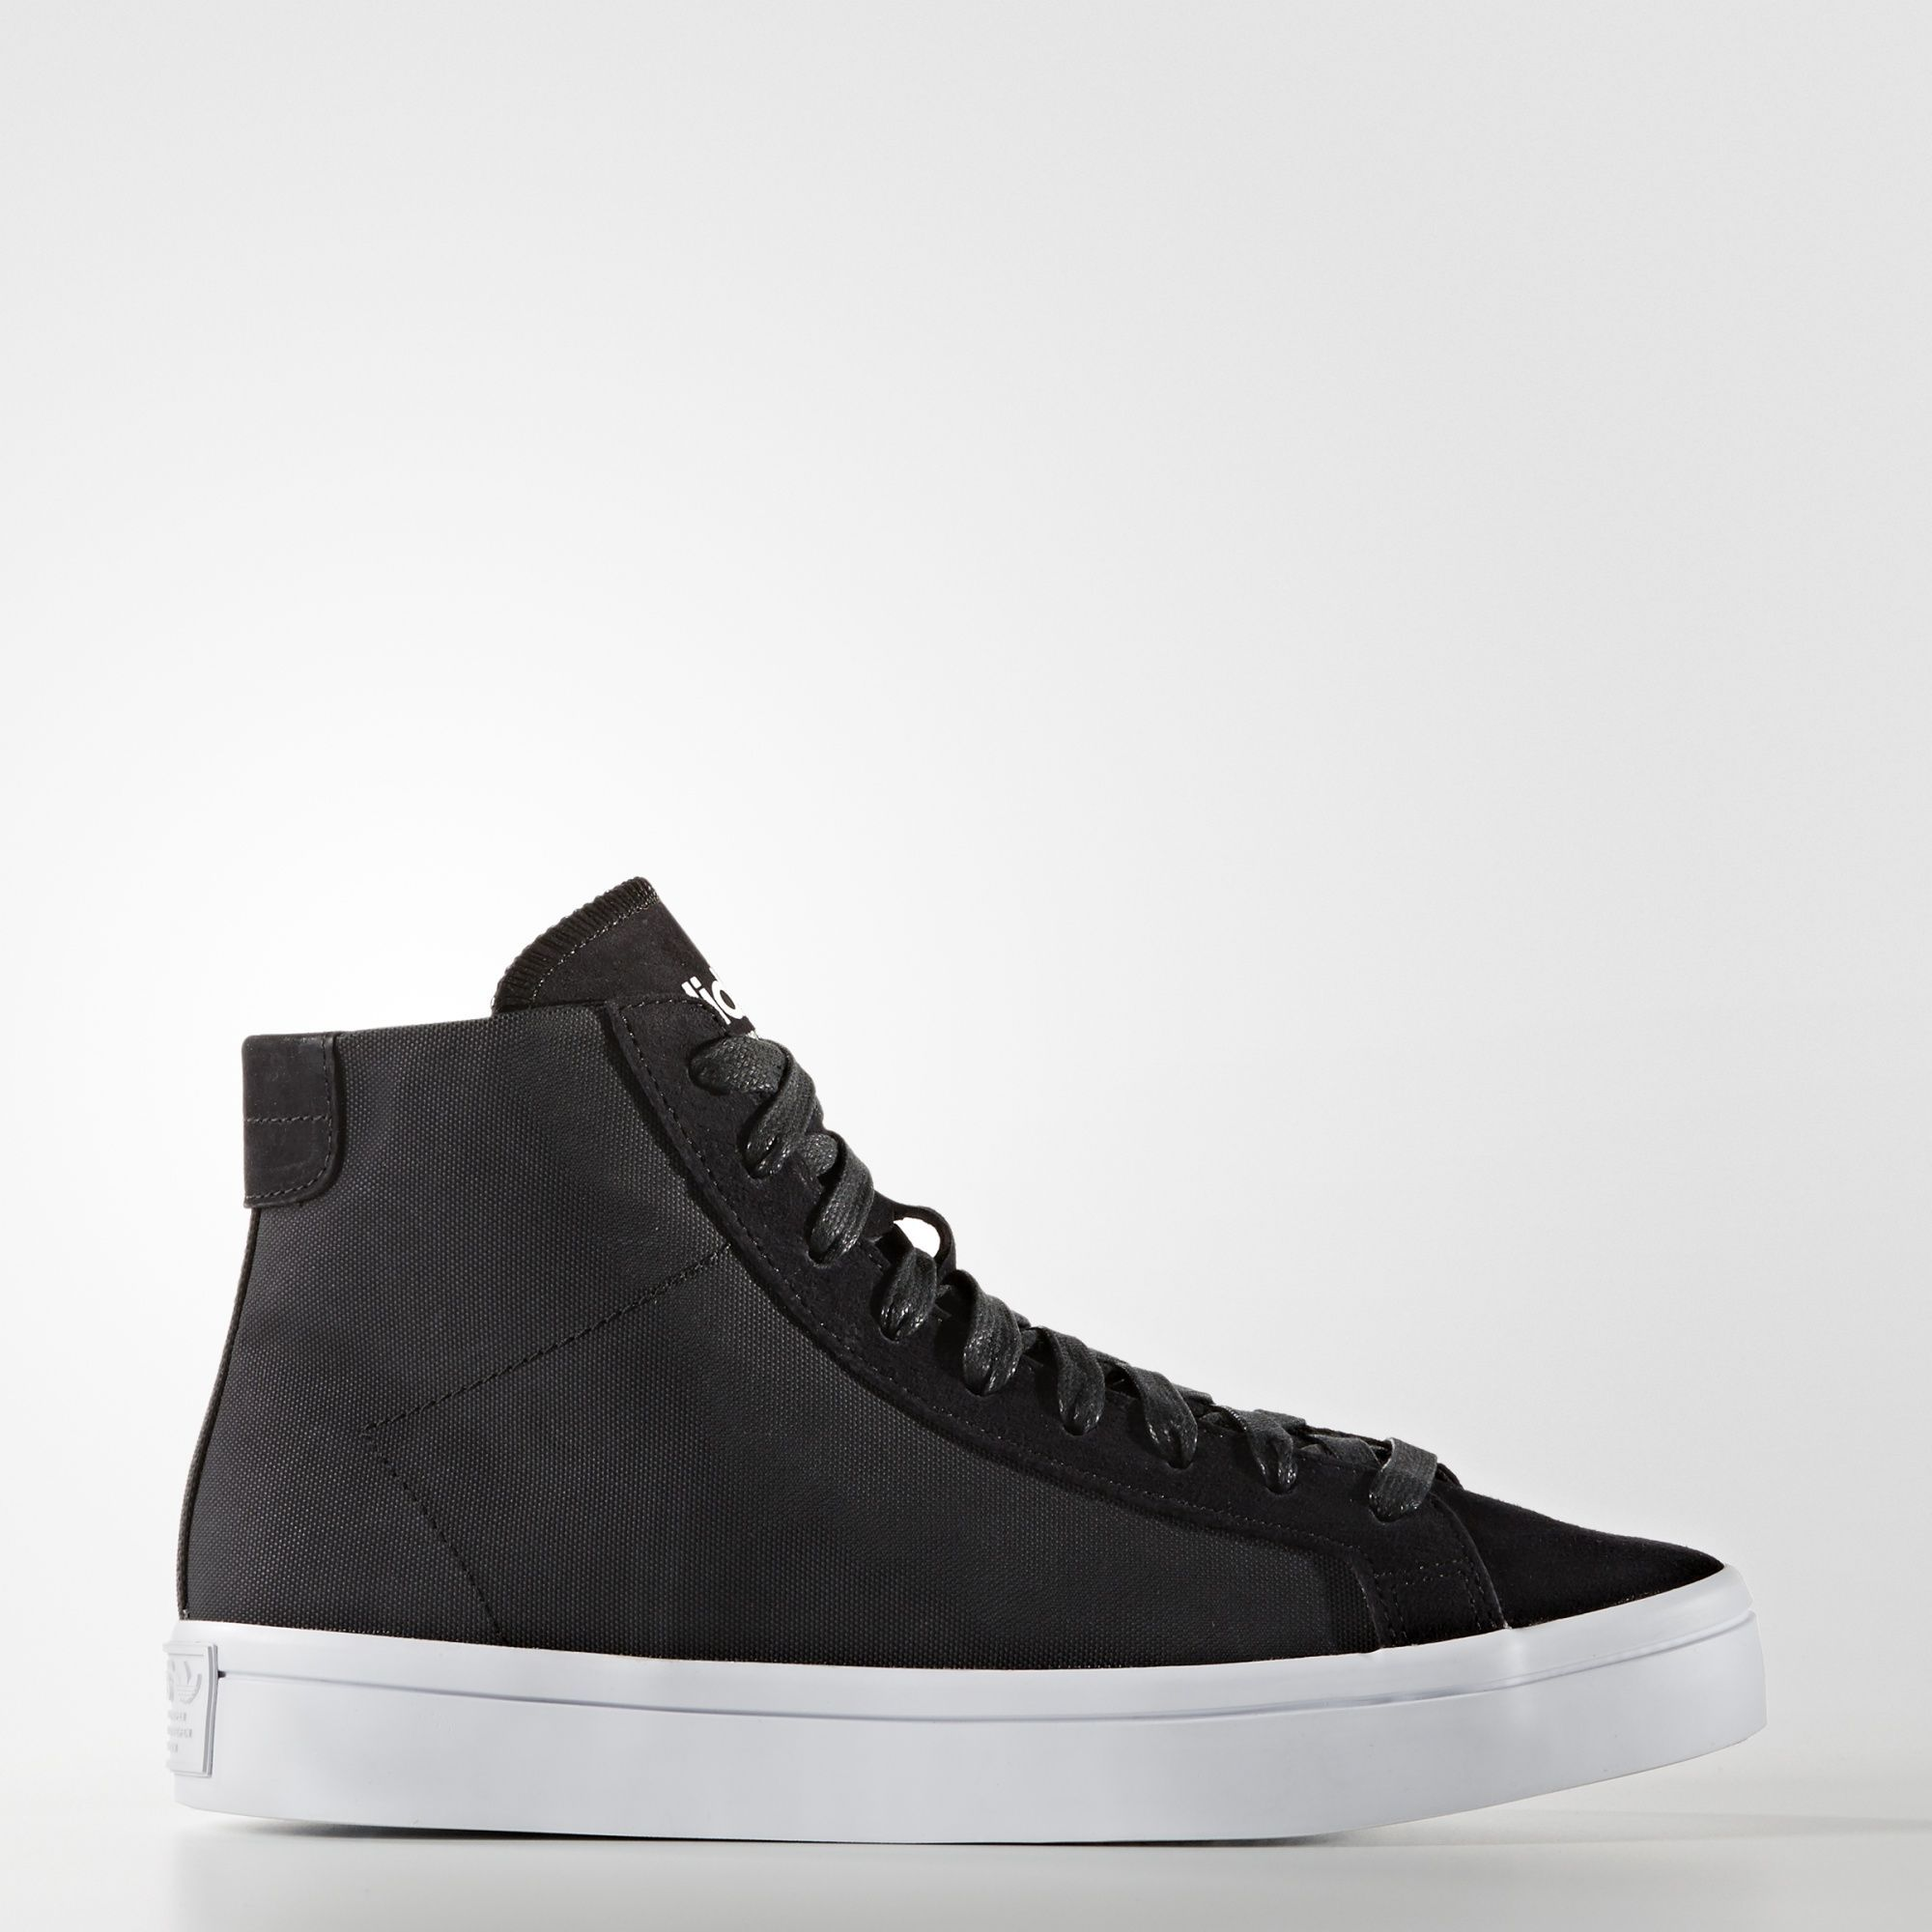 adidas court vantage mid shoes